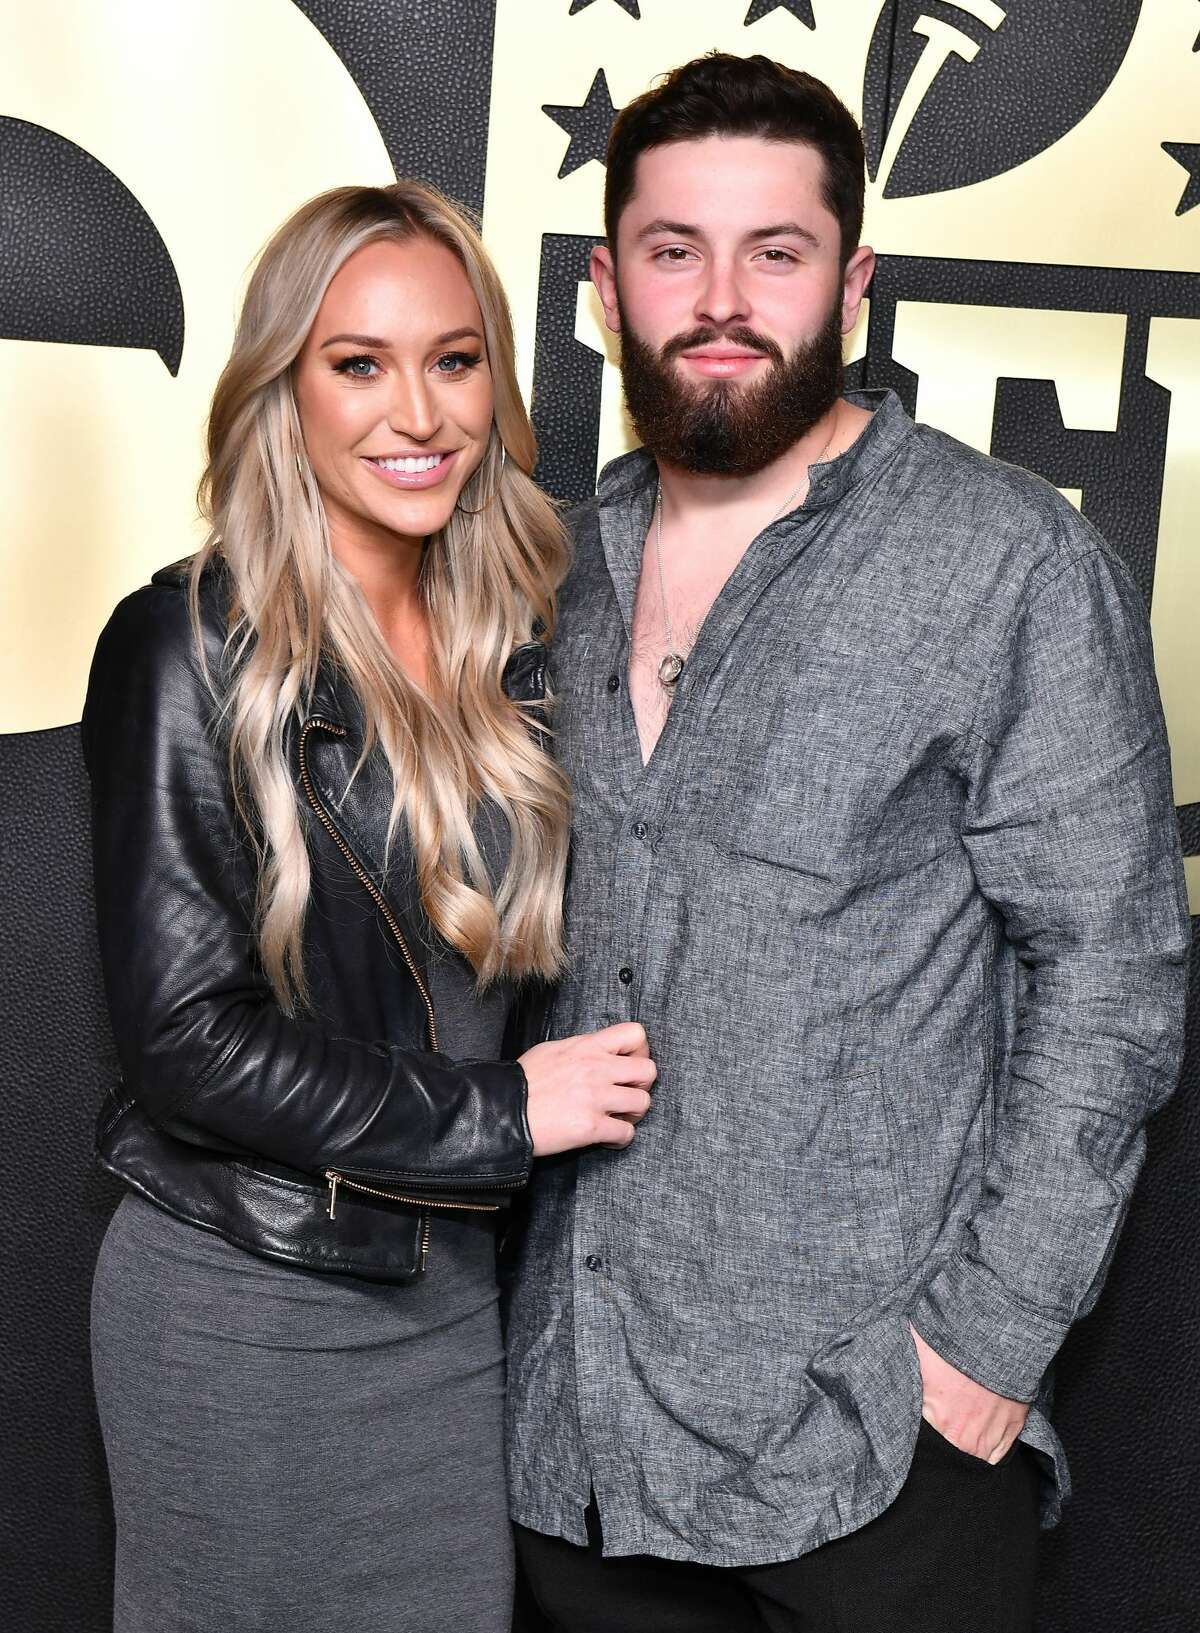 ATLANTA, GEORGIA - FEBRUARY 02: Emily Wilkinson and NFL Player Baker Mayfield attends GQ 2019 NFL Honors After Party at Gallery 874 on February 02, 2019 in Atlanta, Georgia. (Photo by Paras Griffin/Getty Images)